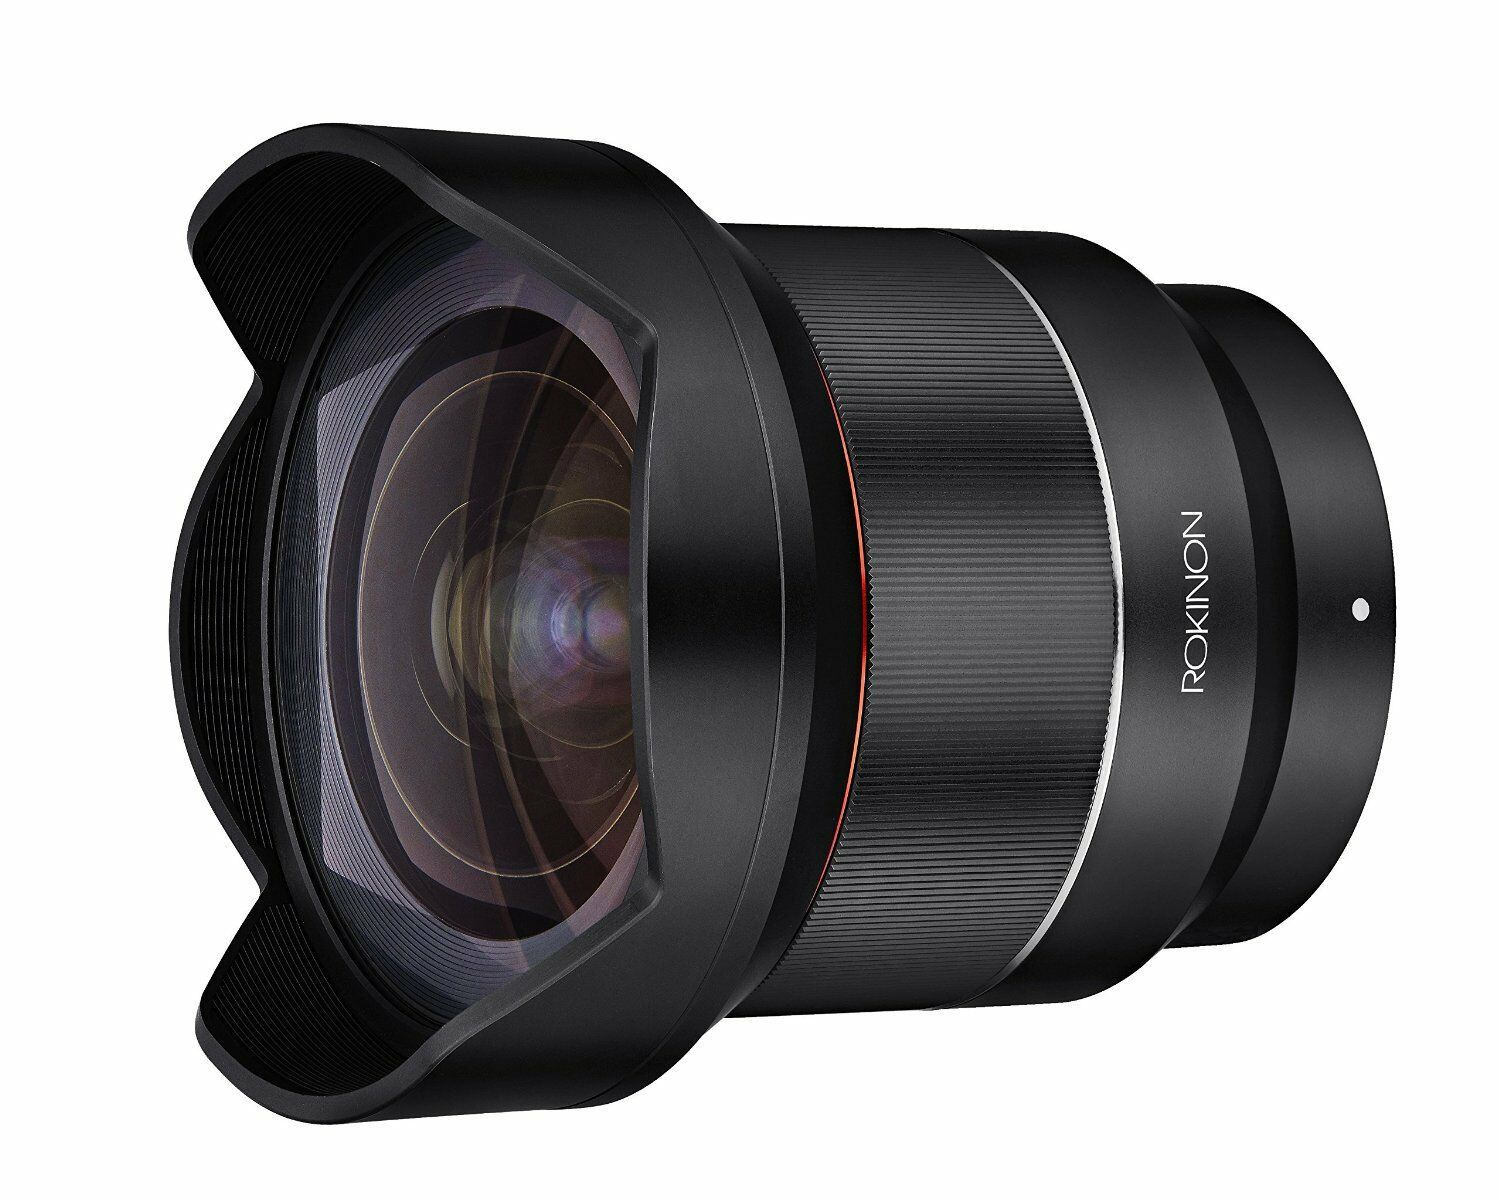 как выглядит Объектив Rokinon AF 14mm F2.8 Full Frame Auto Focus Wide Angle Lens for Sony E Mount FE фото